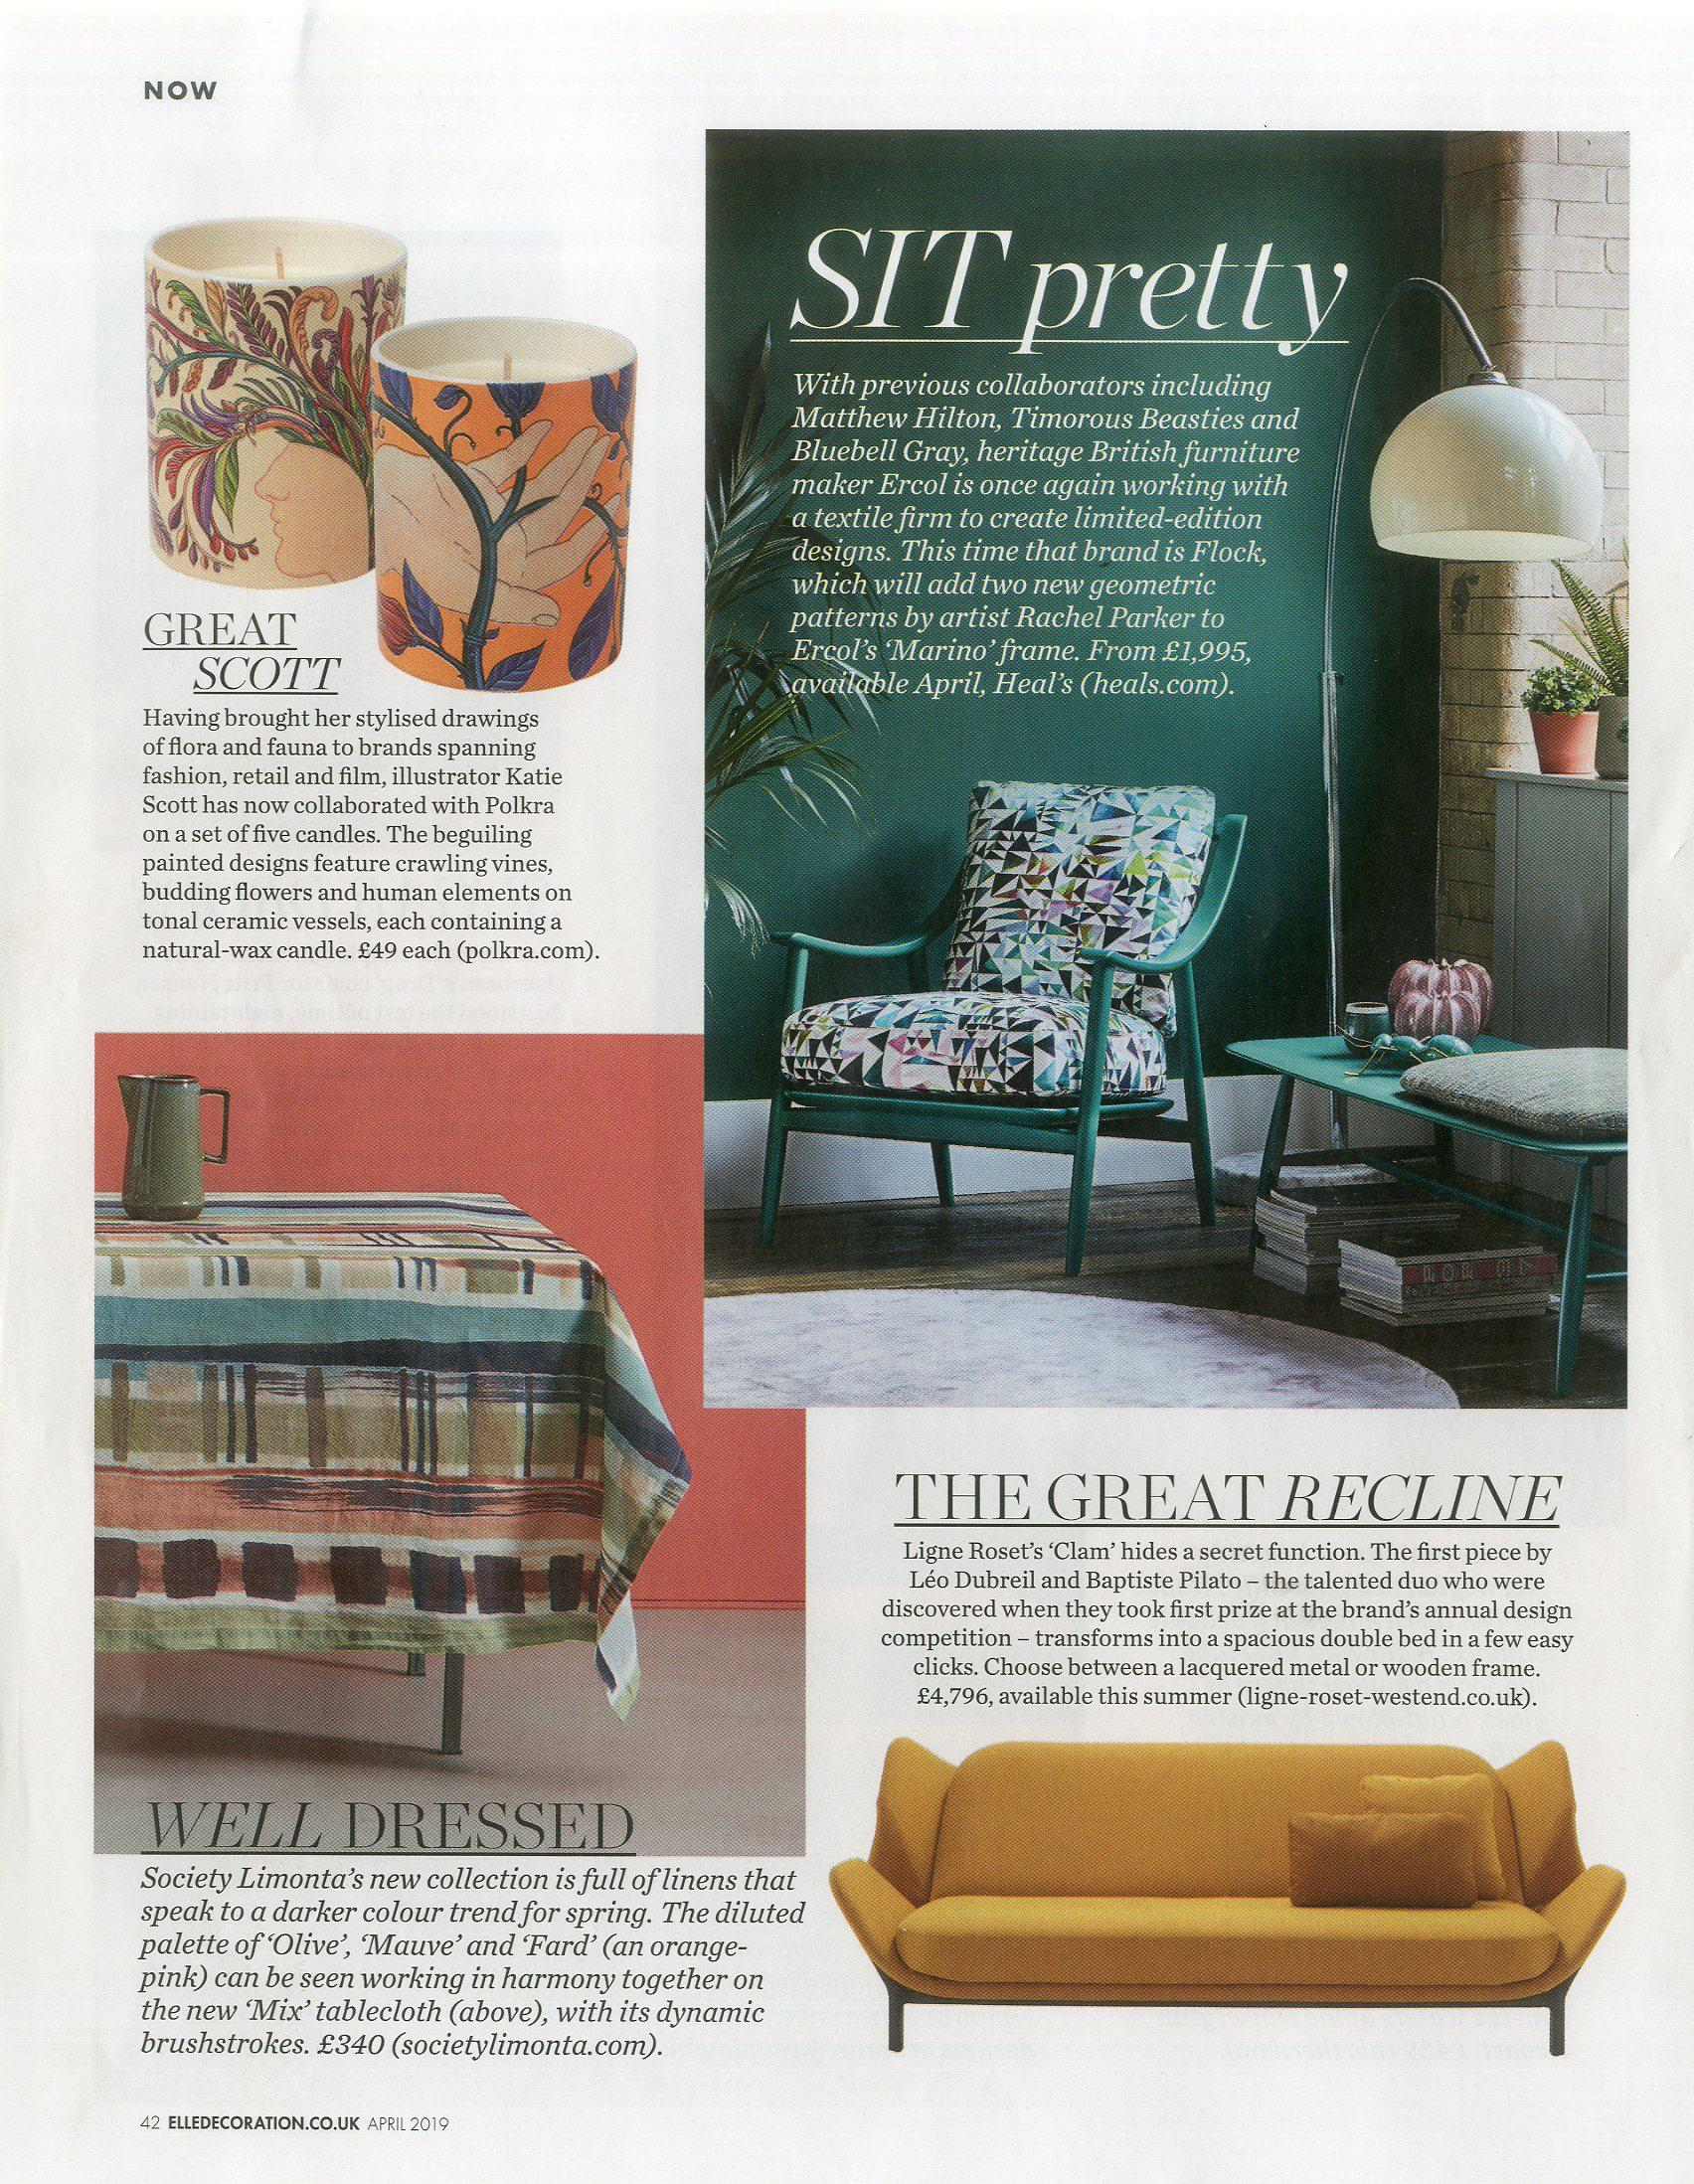 Ligne Roset's Clam sofa bed looking good enough to sleep on in Elle Deco, April